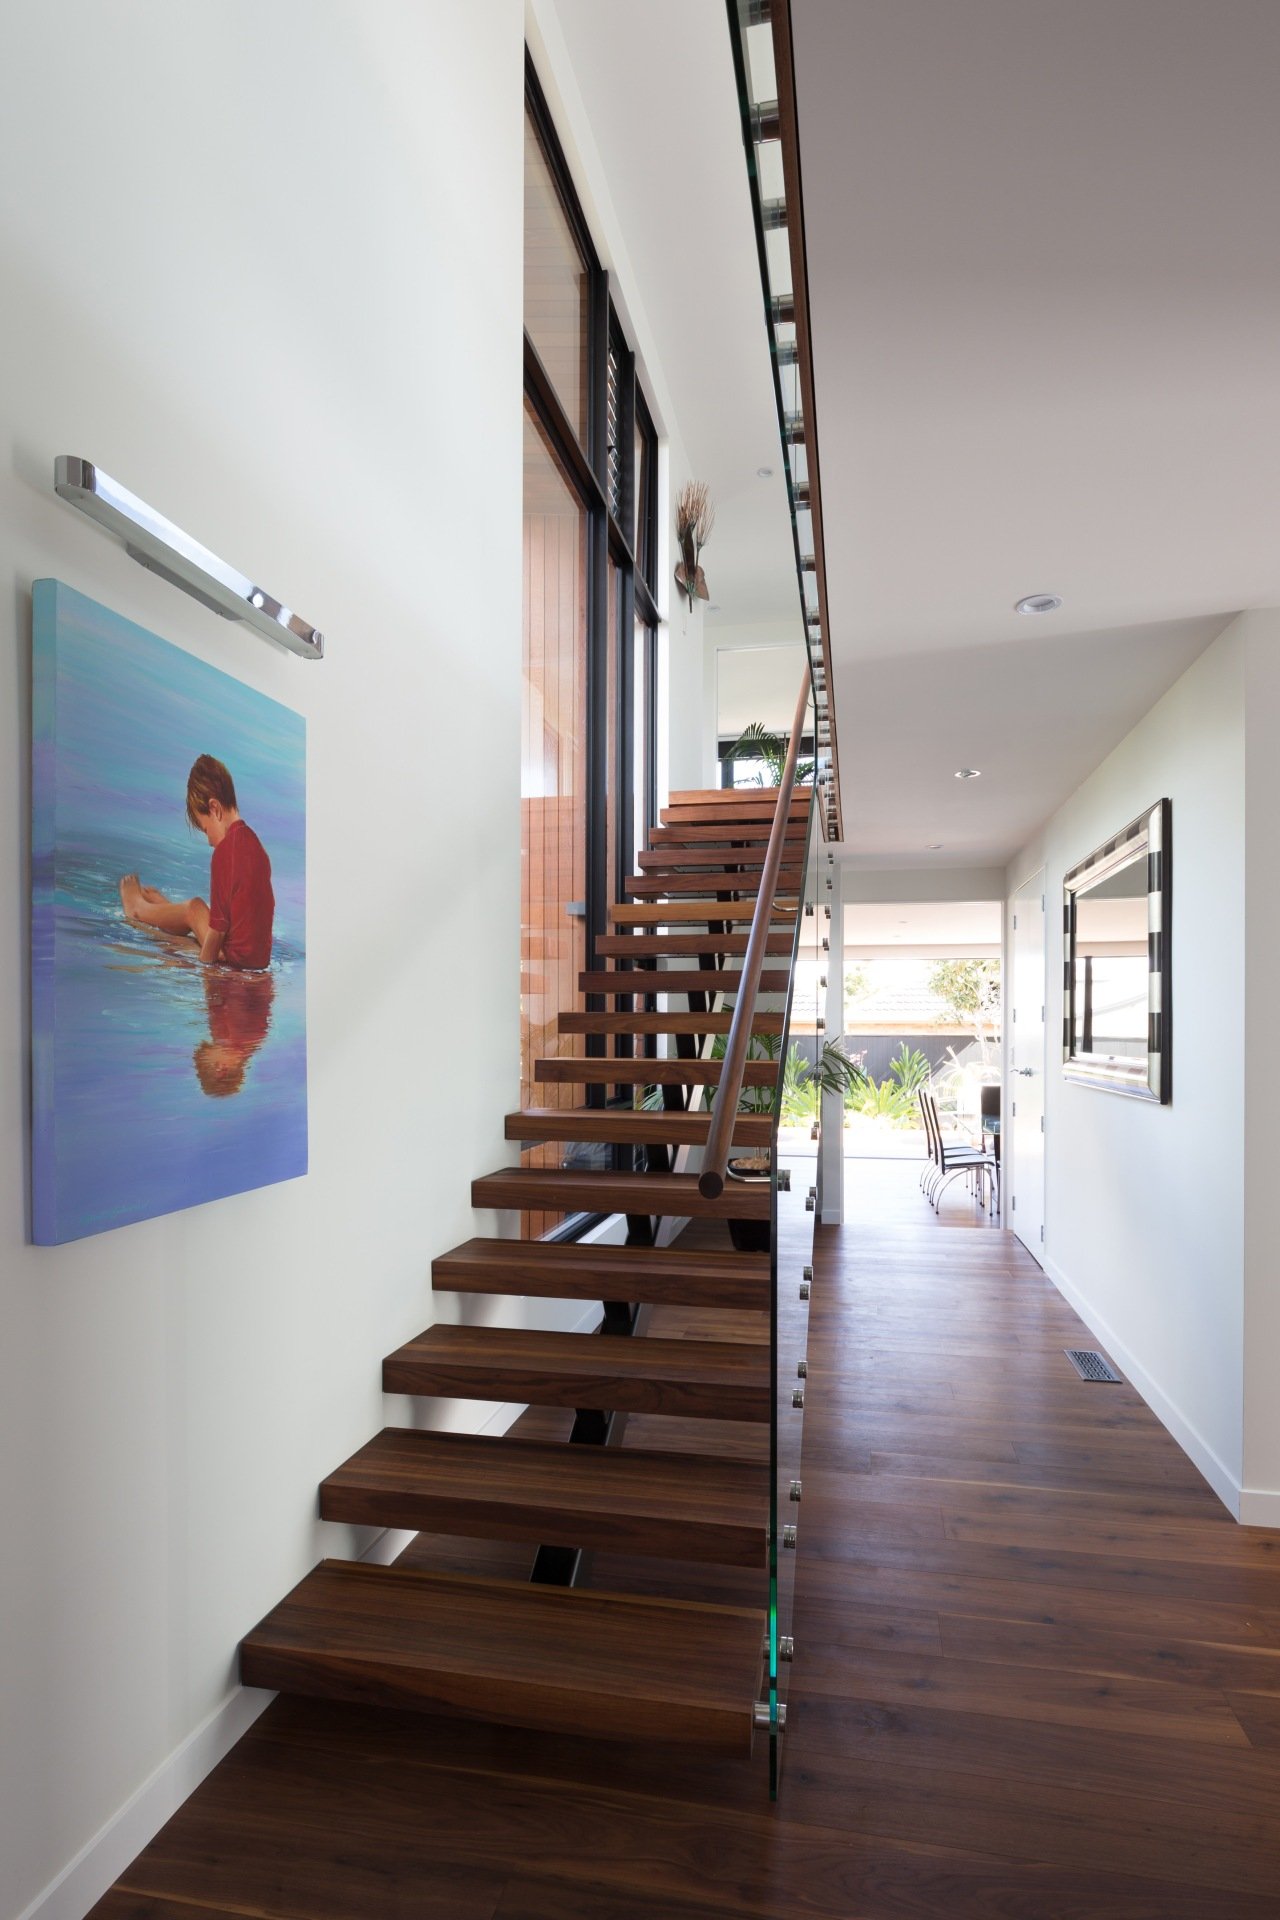 This homes feature walnut, floating staircase is also architecture, daylighting, floor, handrail, house, interior design, product design, stairs, gray